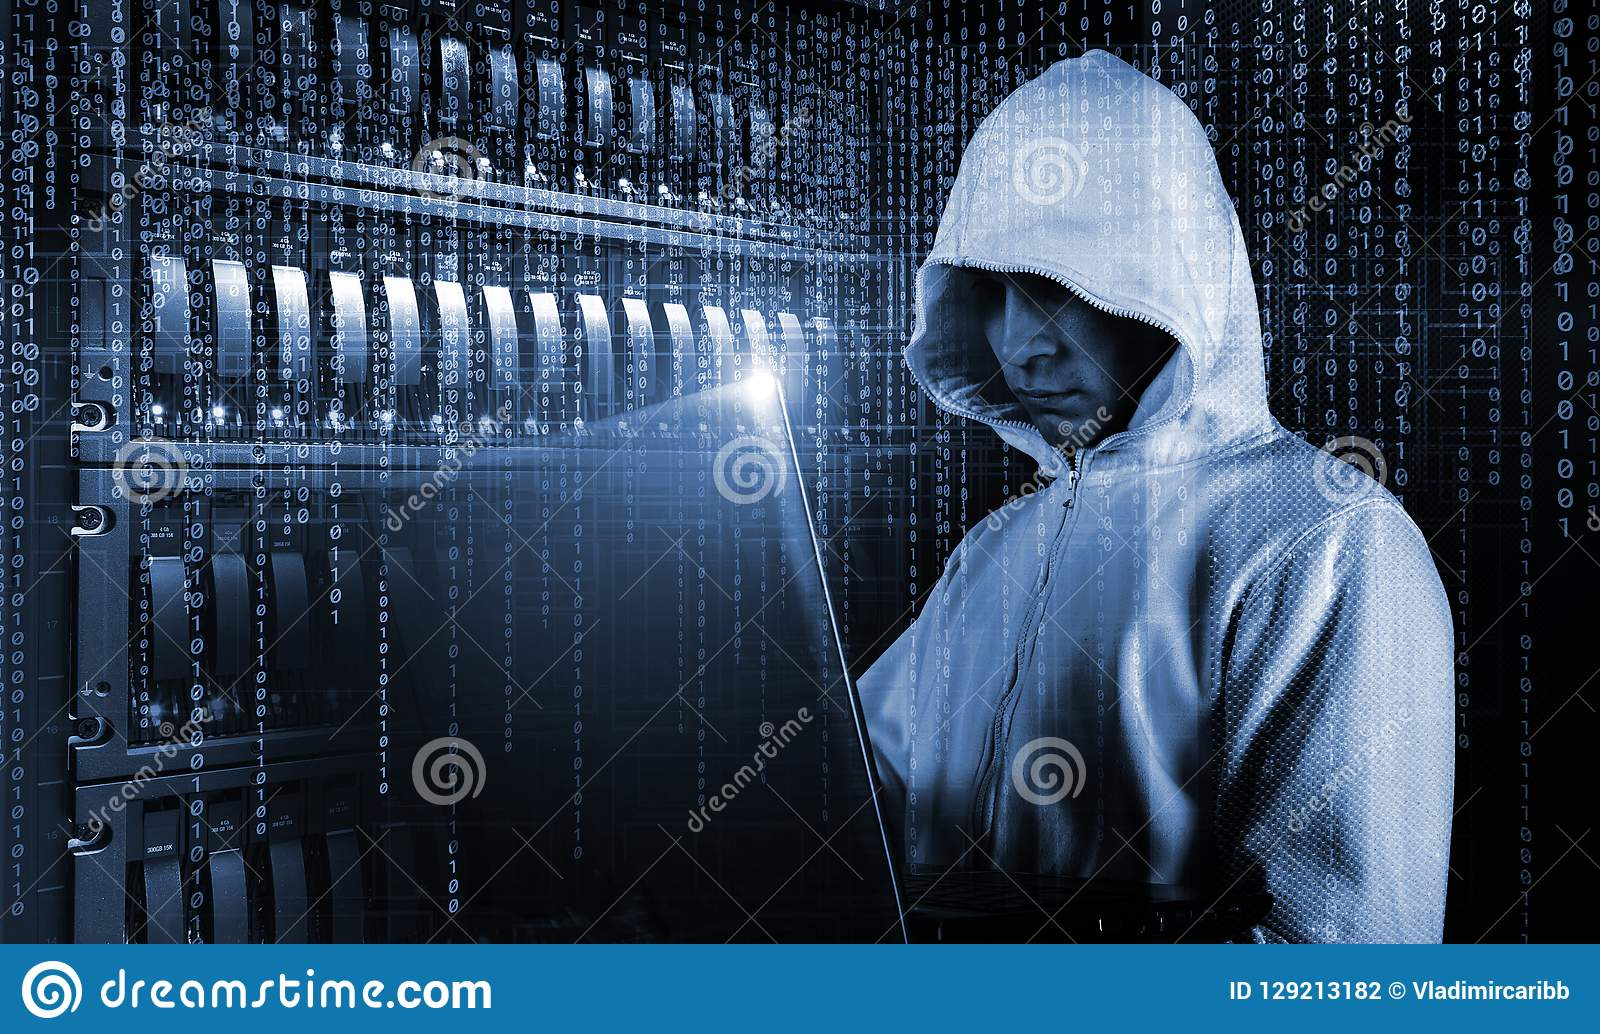 Hacker or cracker tries to hack a security system to steal or destroy critical information. Or a ransom of important information o